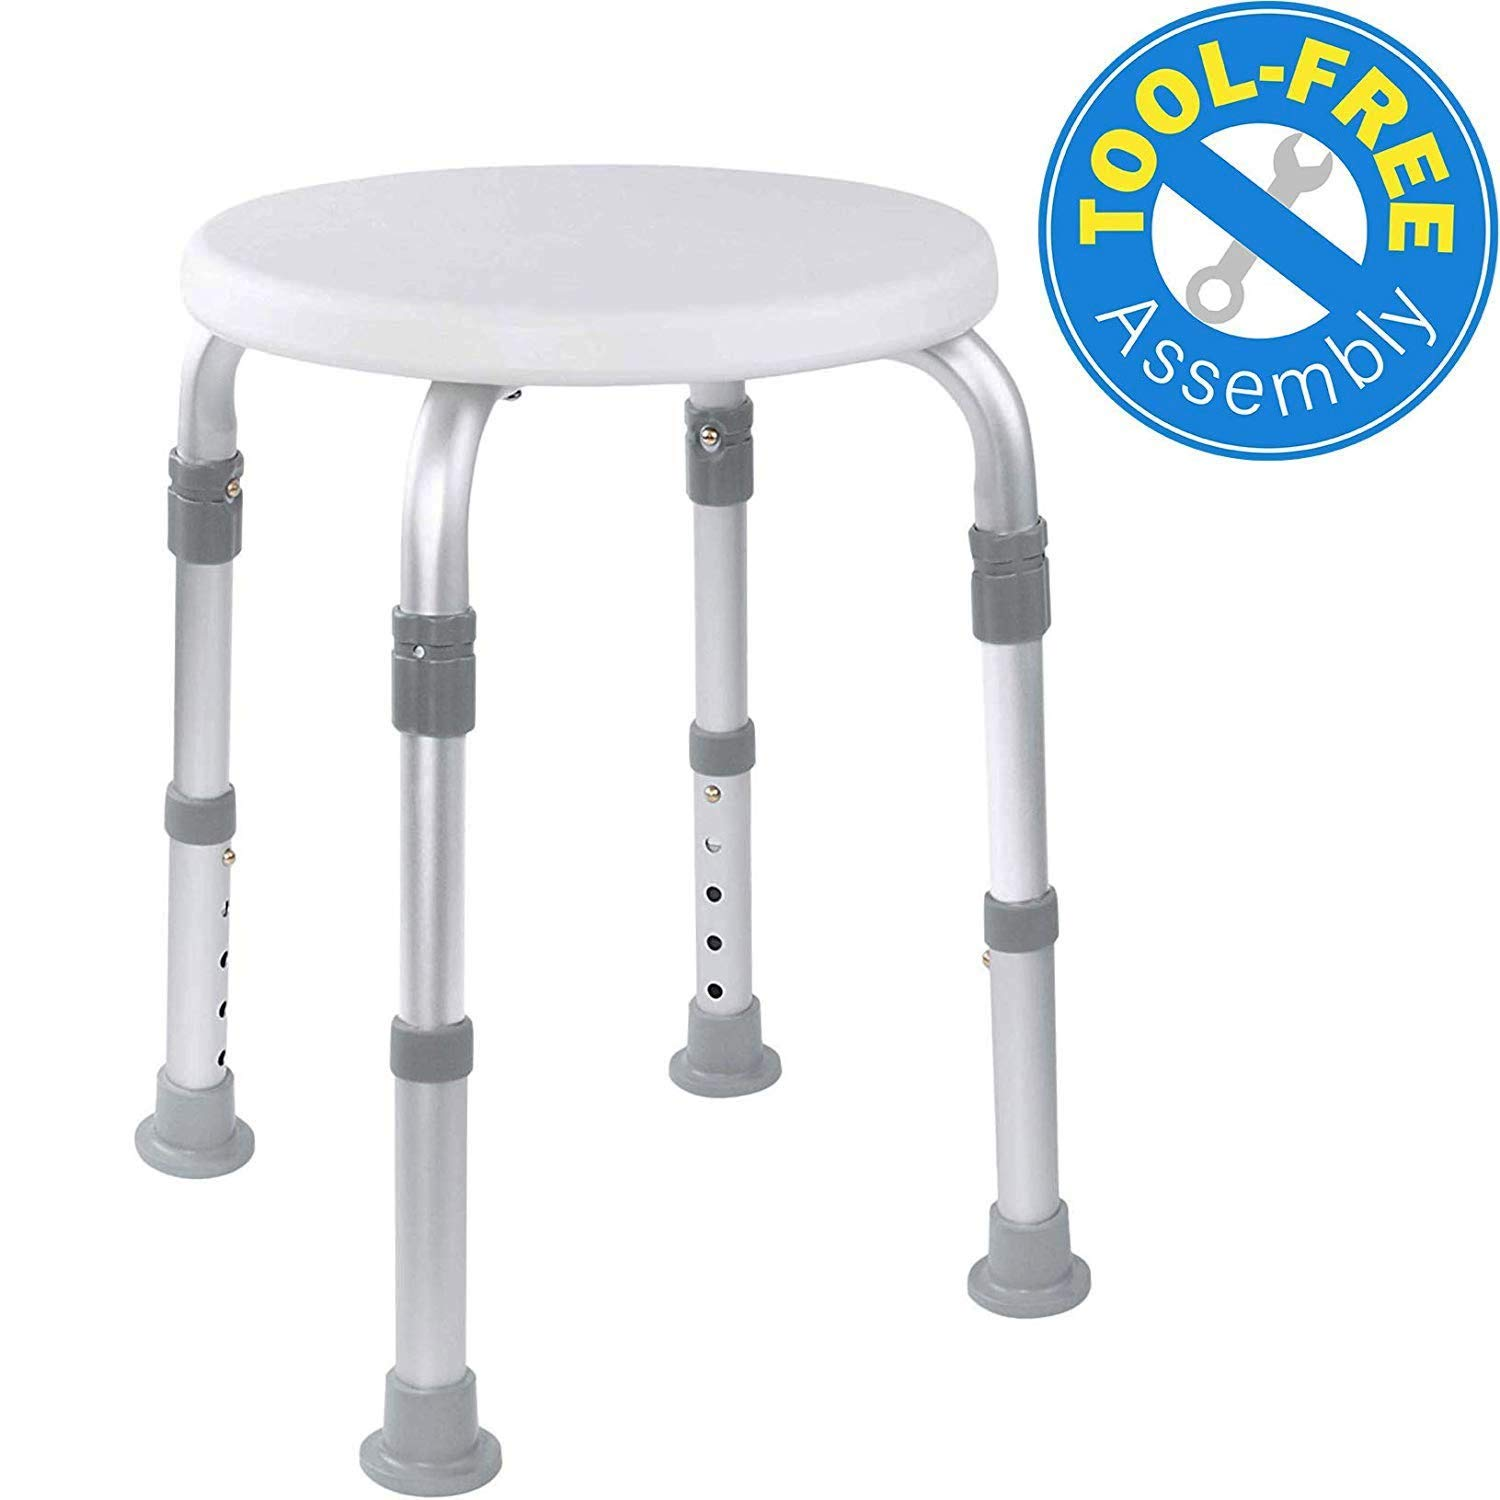 Medical ToolFree Assembly Adjustable Shower Stool Tub Chair and Bathtub Seat Bench with AntiSlip